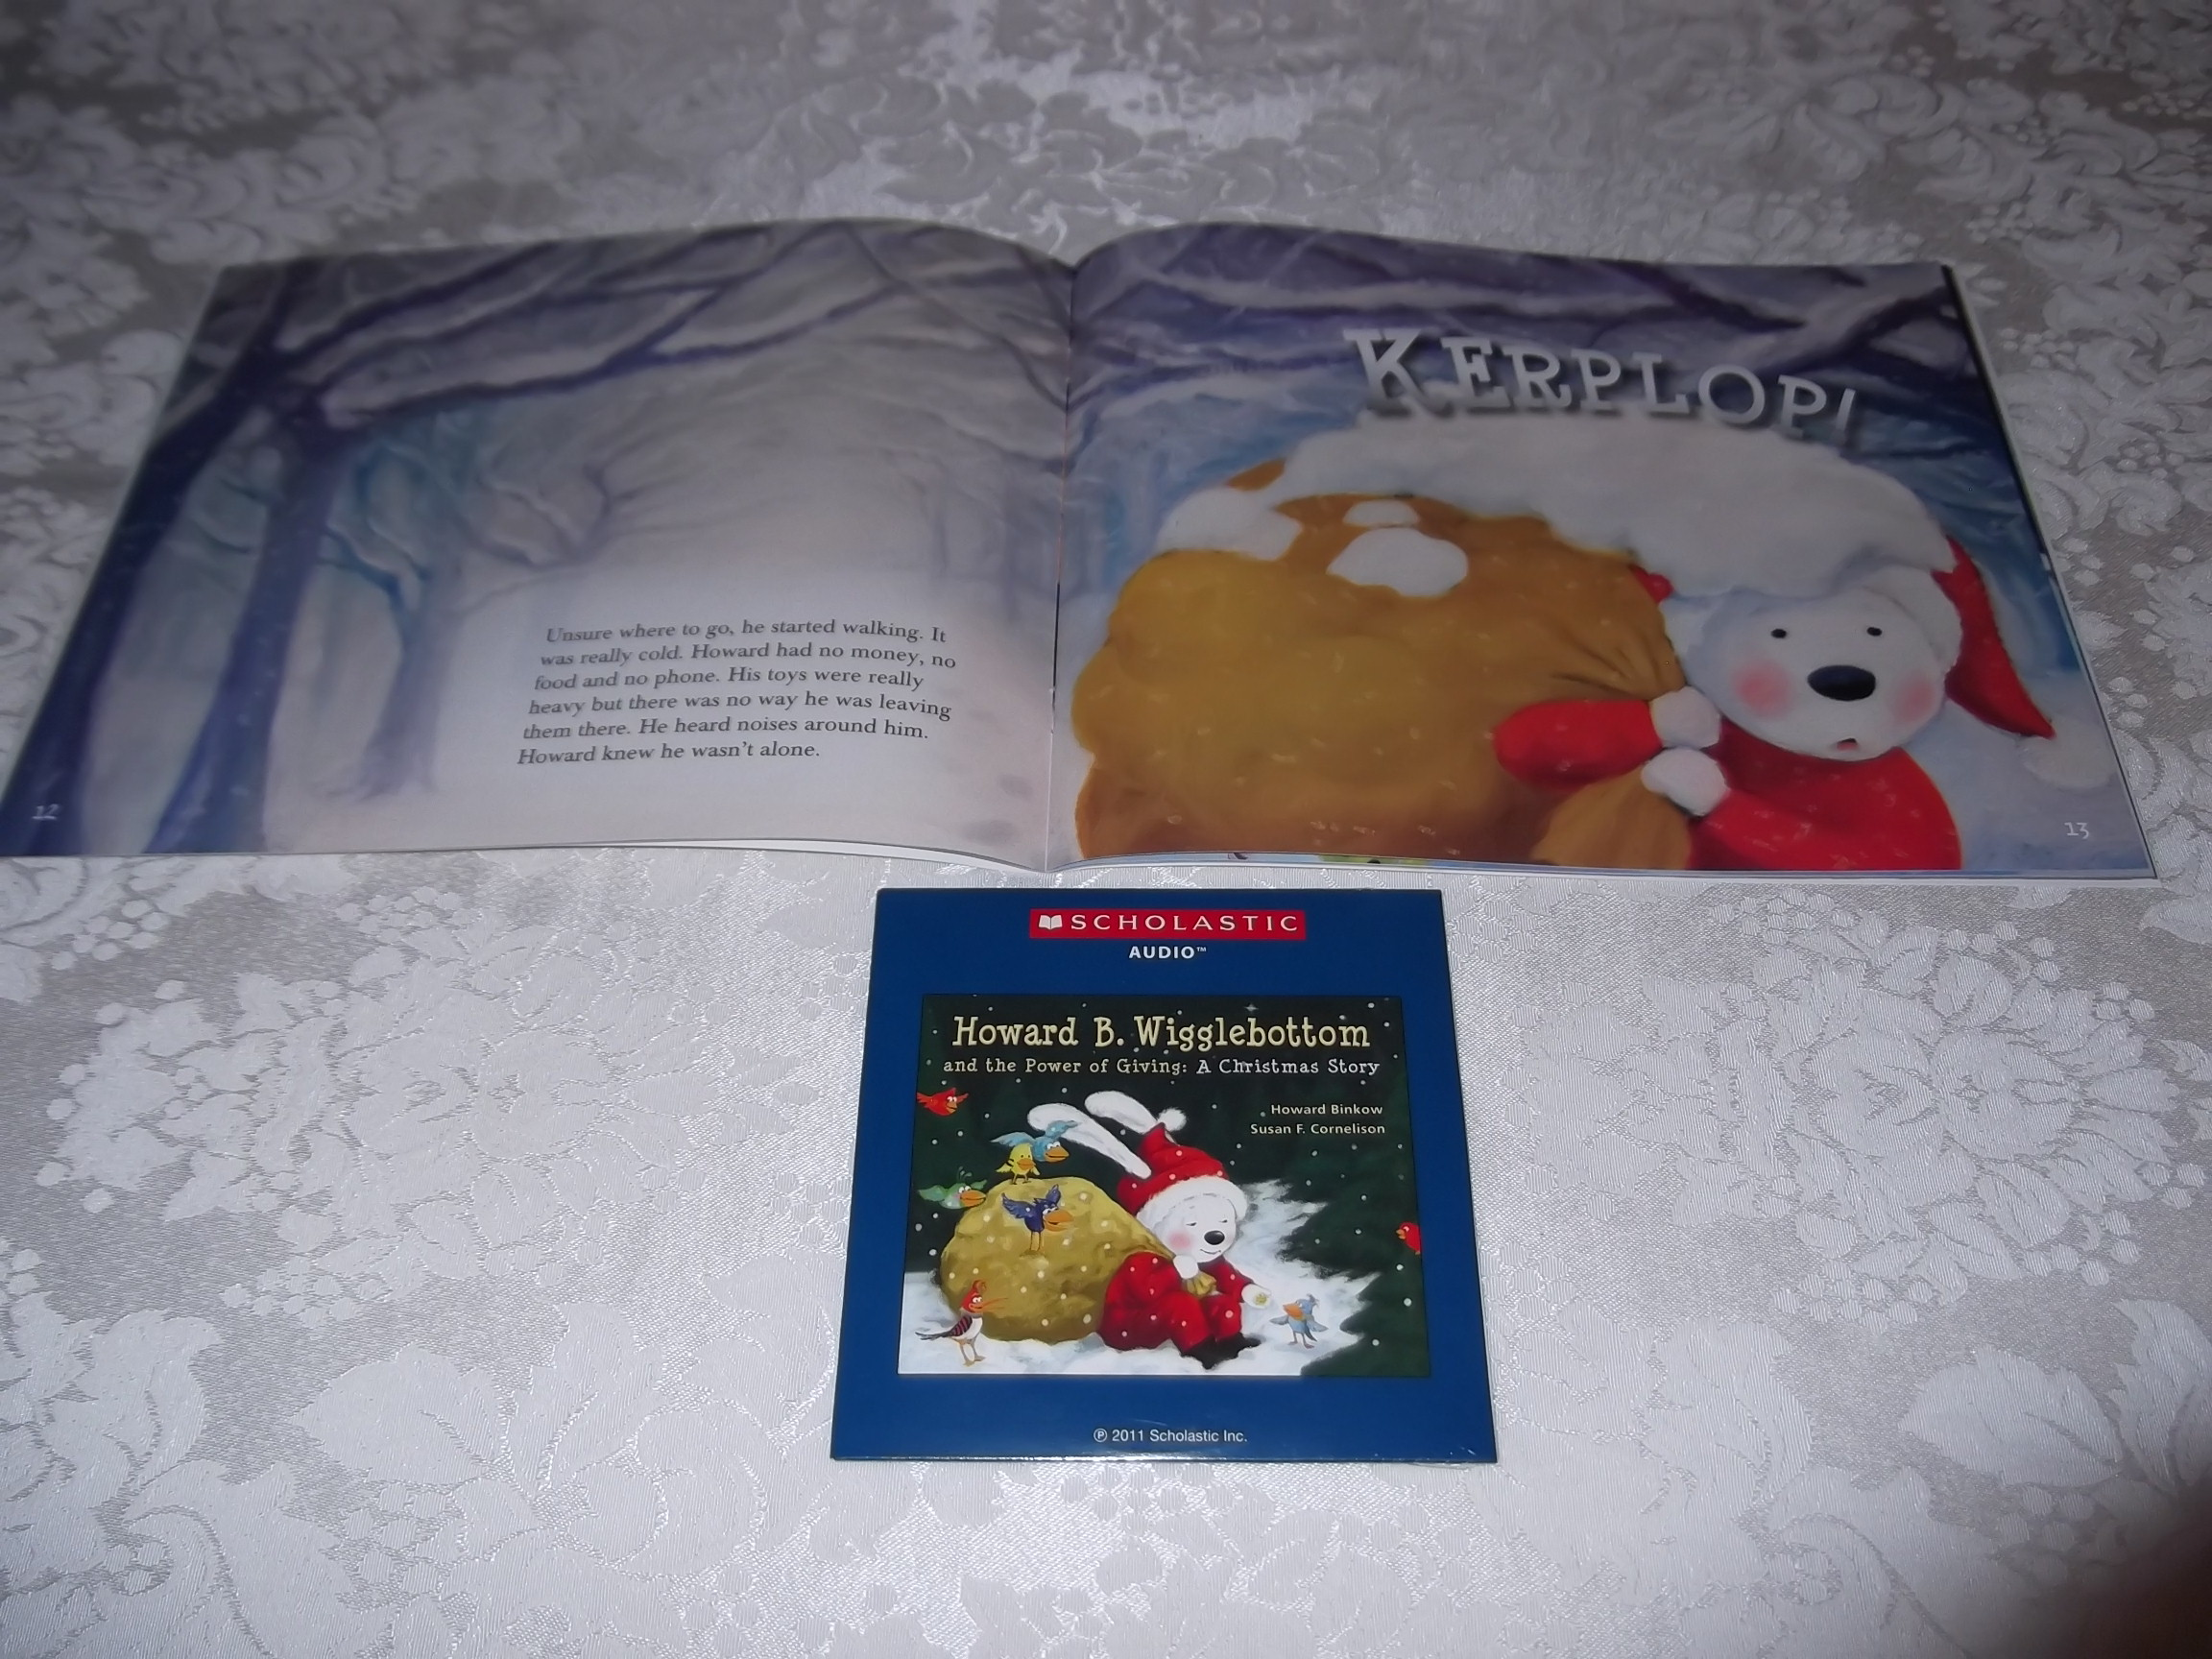 Image 8 of Howard B. Wigglebottom and the Power of Giving: A Christmas Story Audio CD & SC